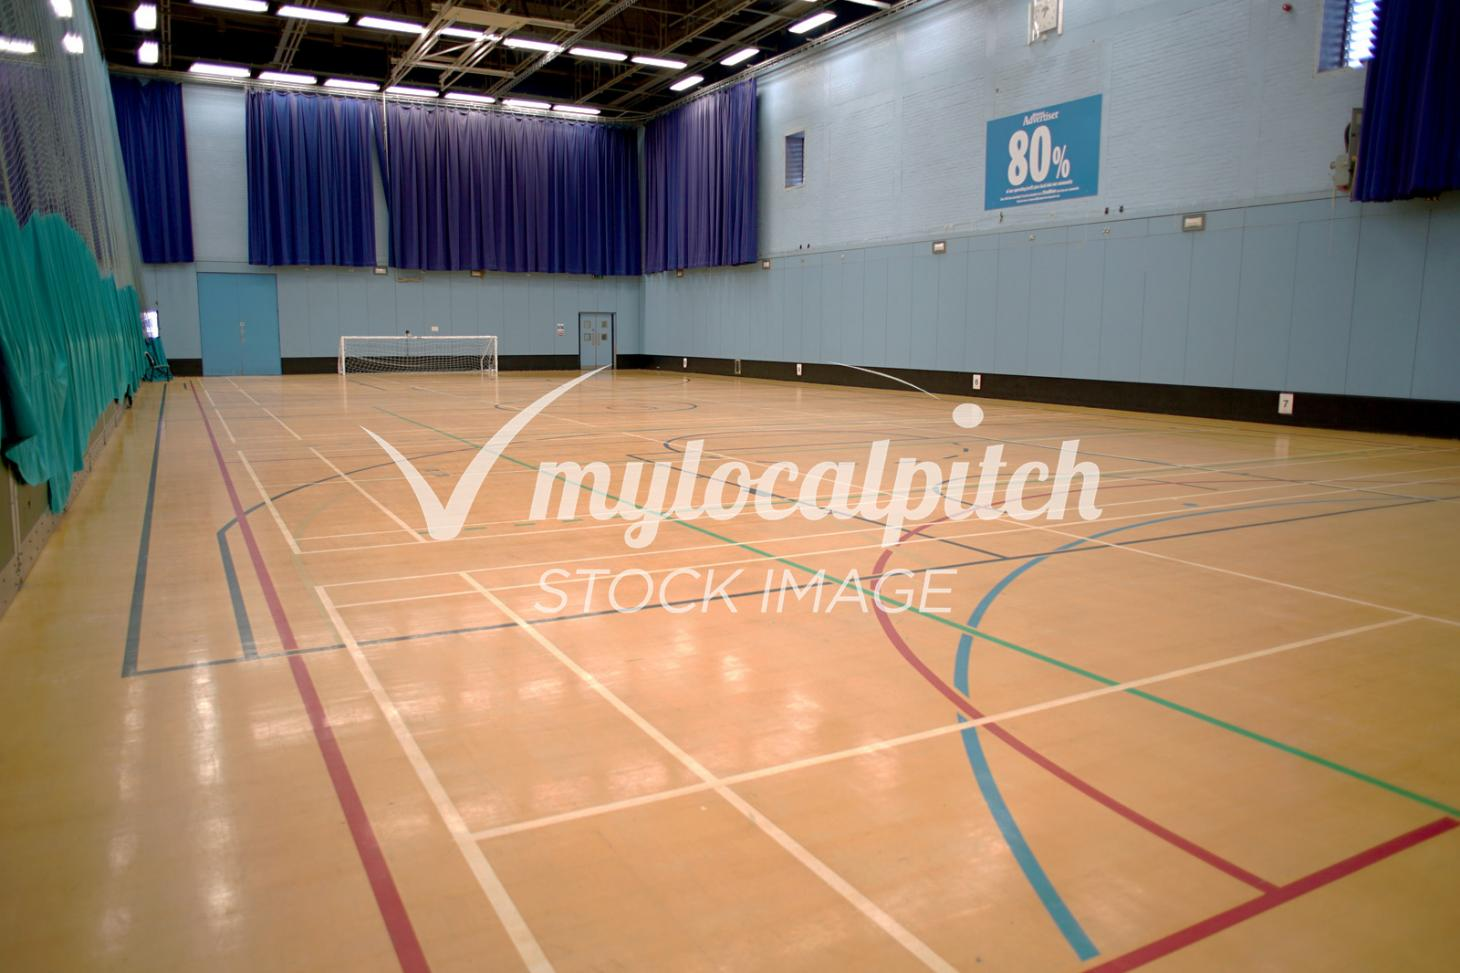 Venue 360 5 a side | Indoor football pitch